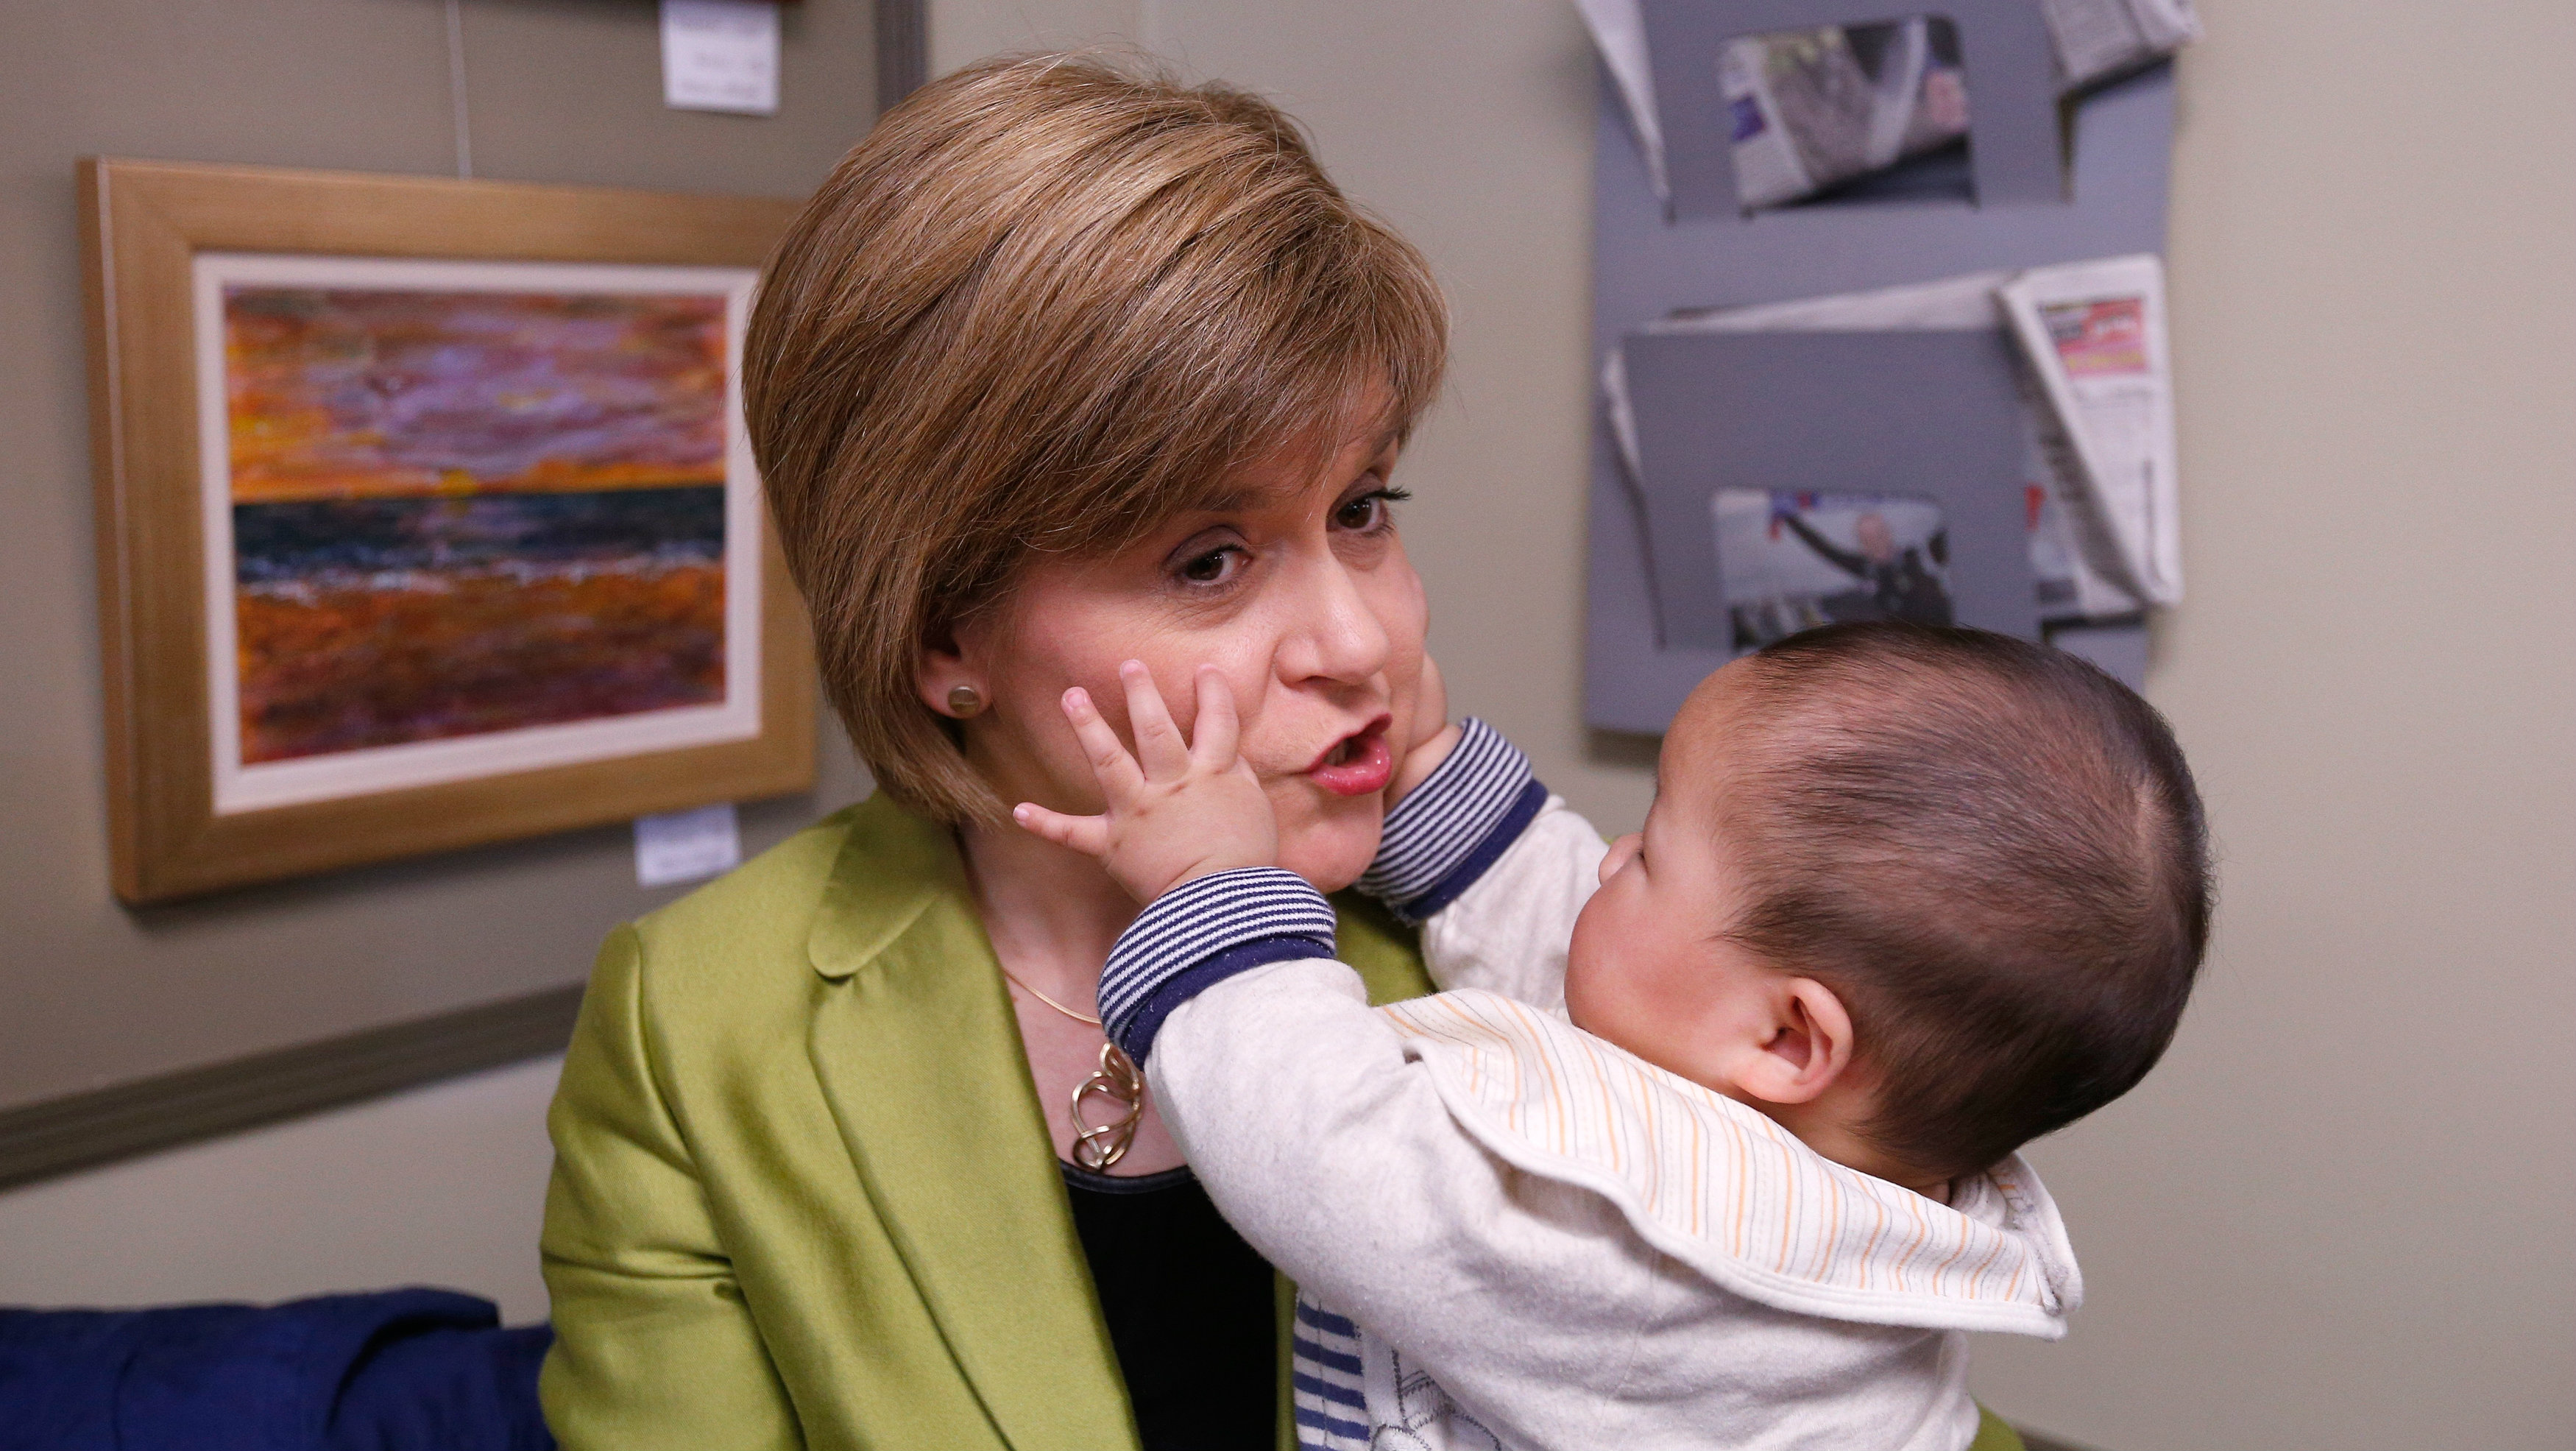 The leader of the Scottish National Party (SNP) Nicola Sturgeon holds a baby during campaigning in Inverurie, Aberdeenshire, April 18, 2015. REUTERS/Russell Cheyne TPX IMAGES OF THE DAY